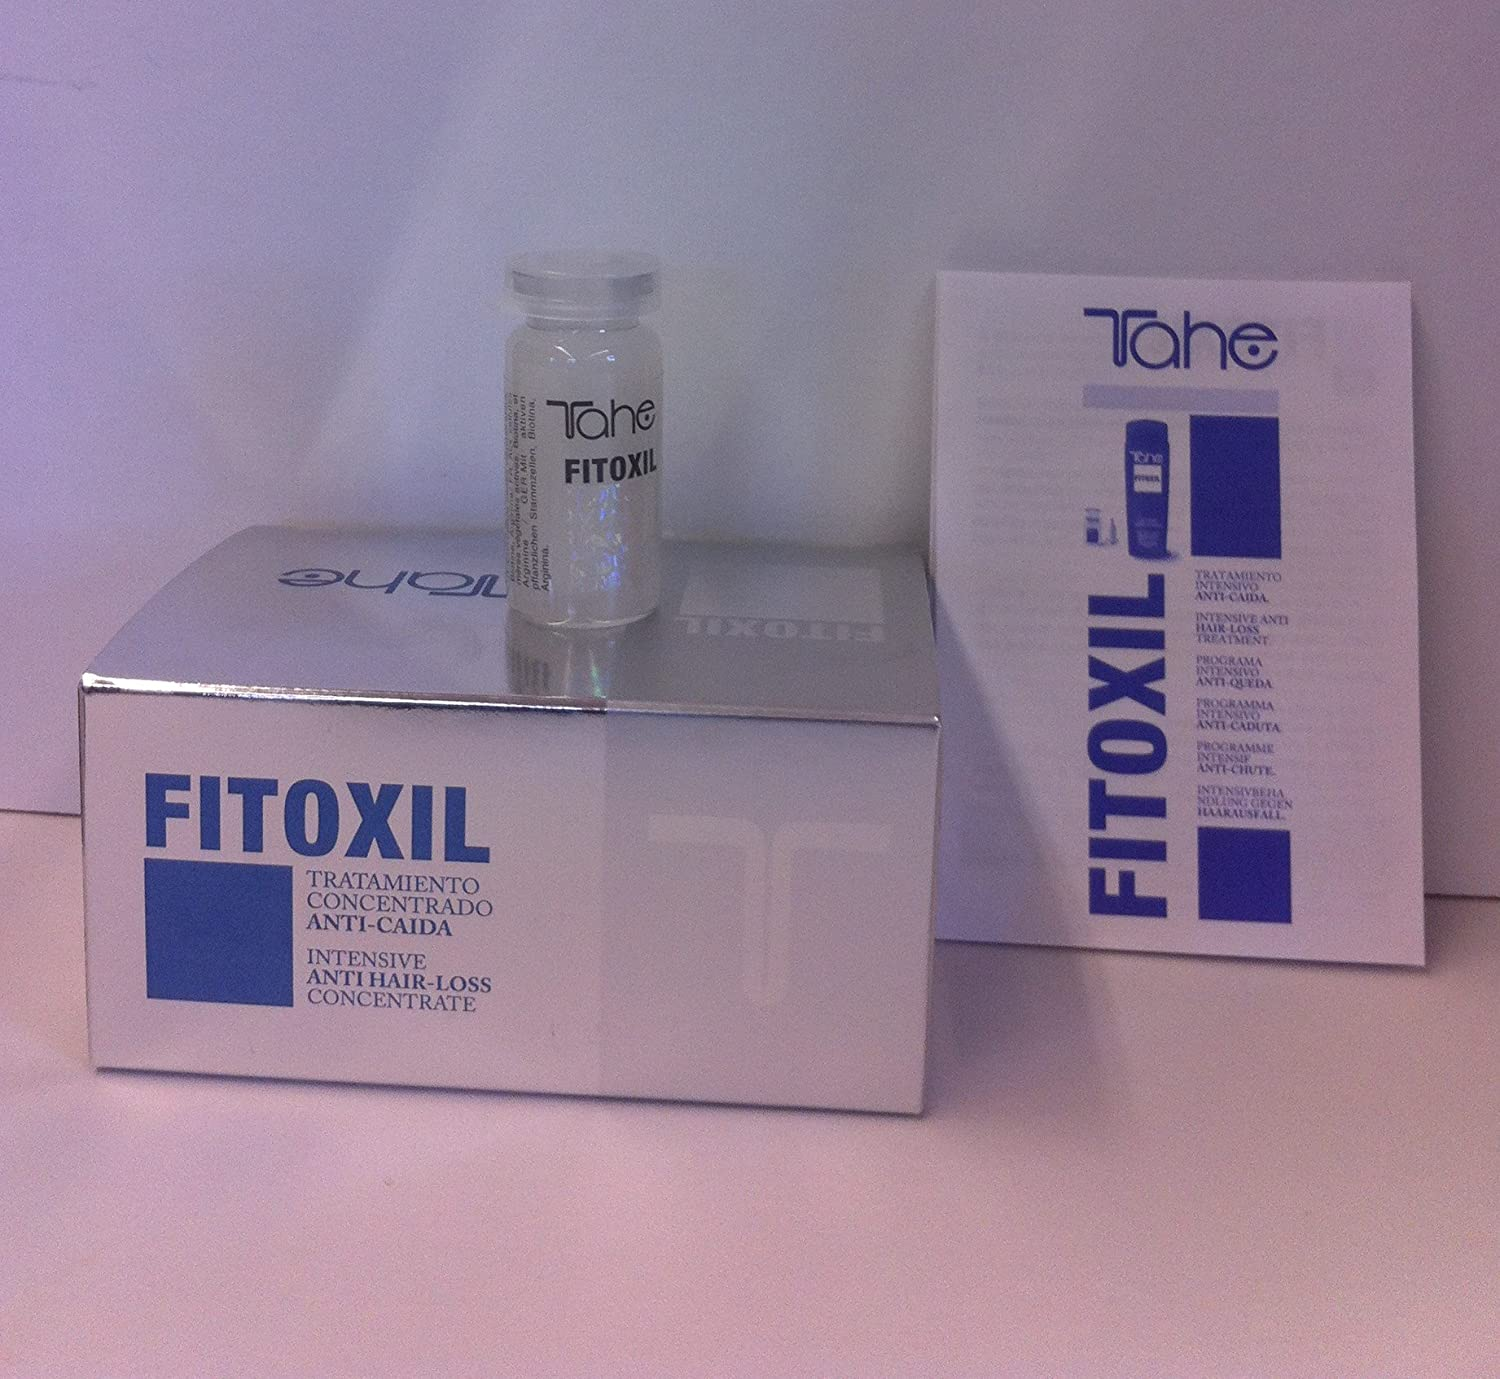 Amazon.com : Fitoxil Intensive Anti Hair-loss Treatment 5 X 10ml : Beauty